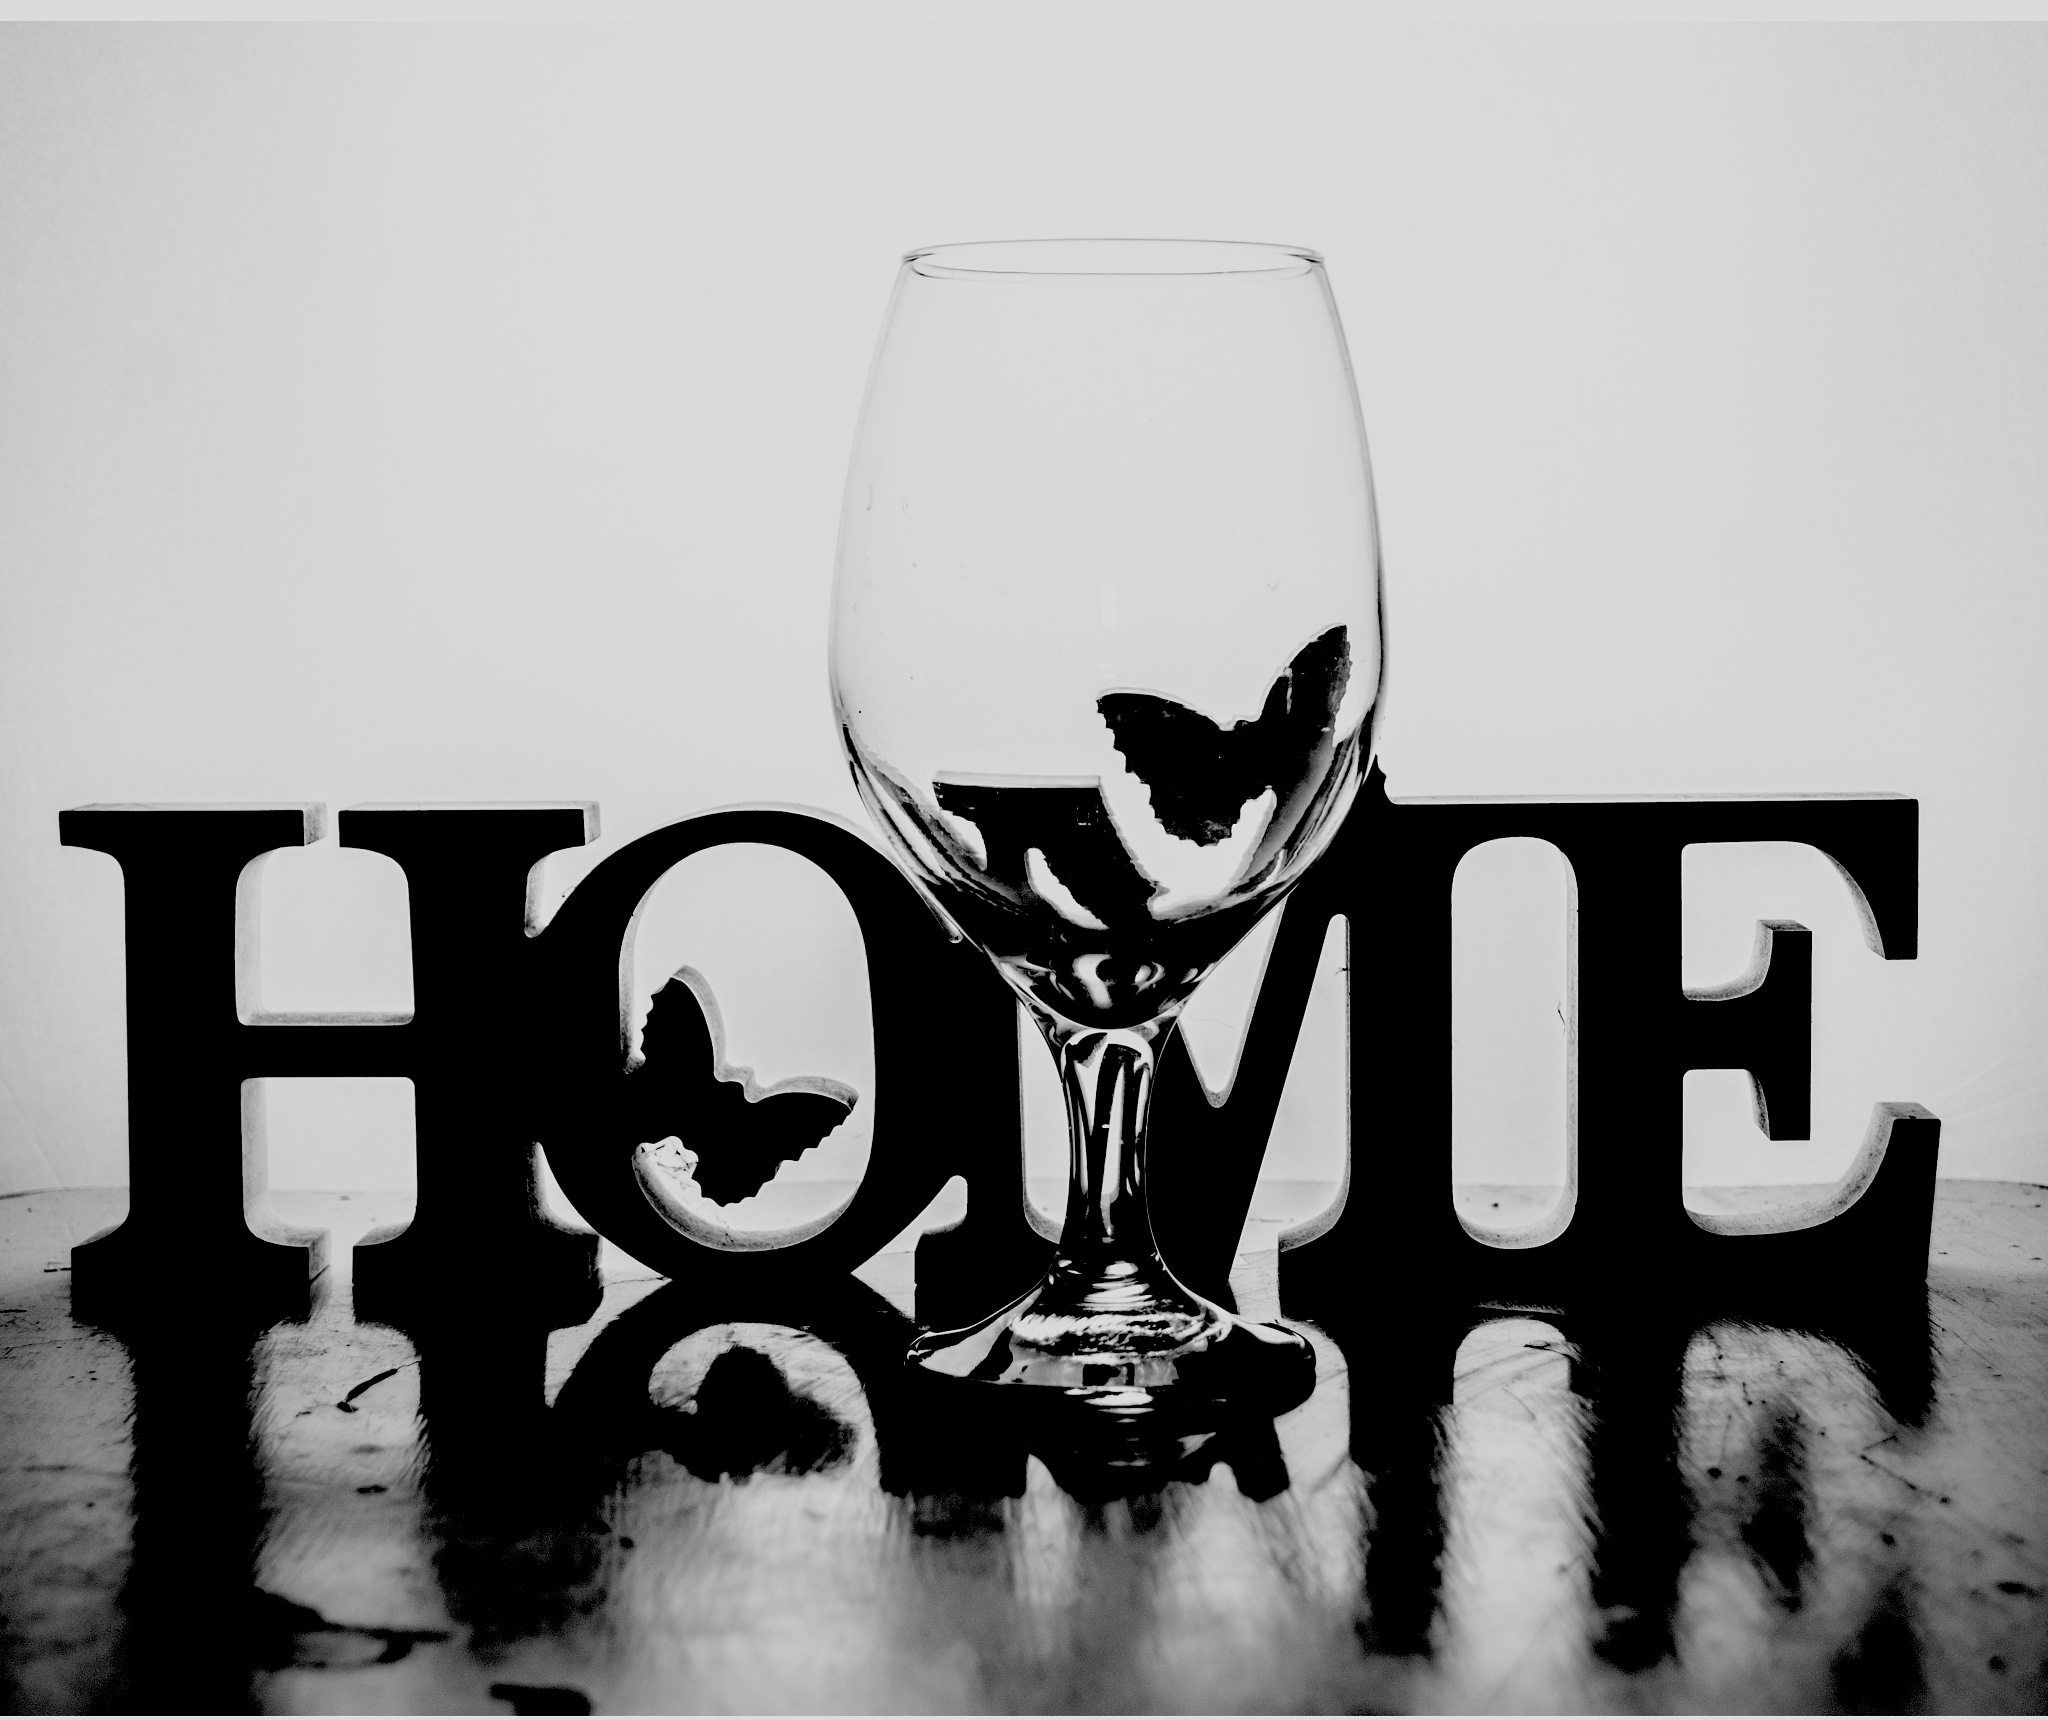 home by Mark Greaves